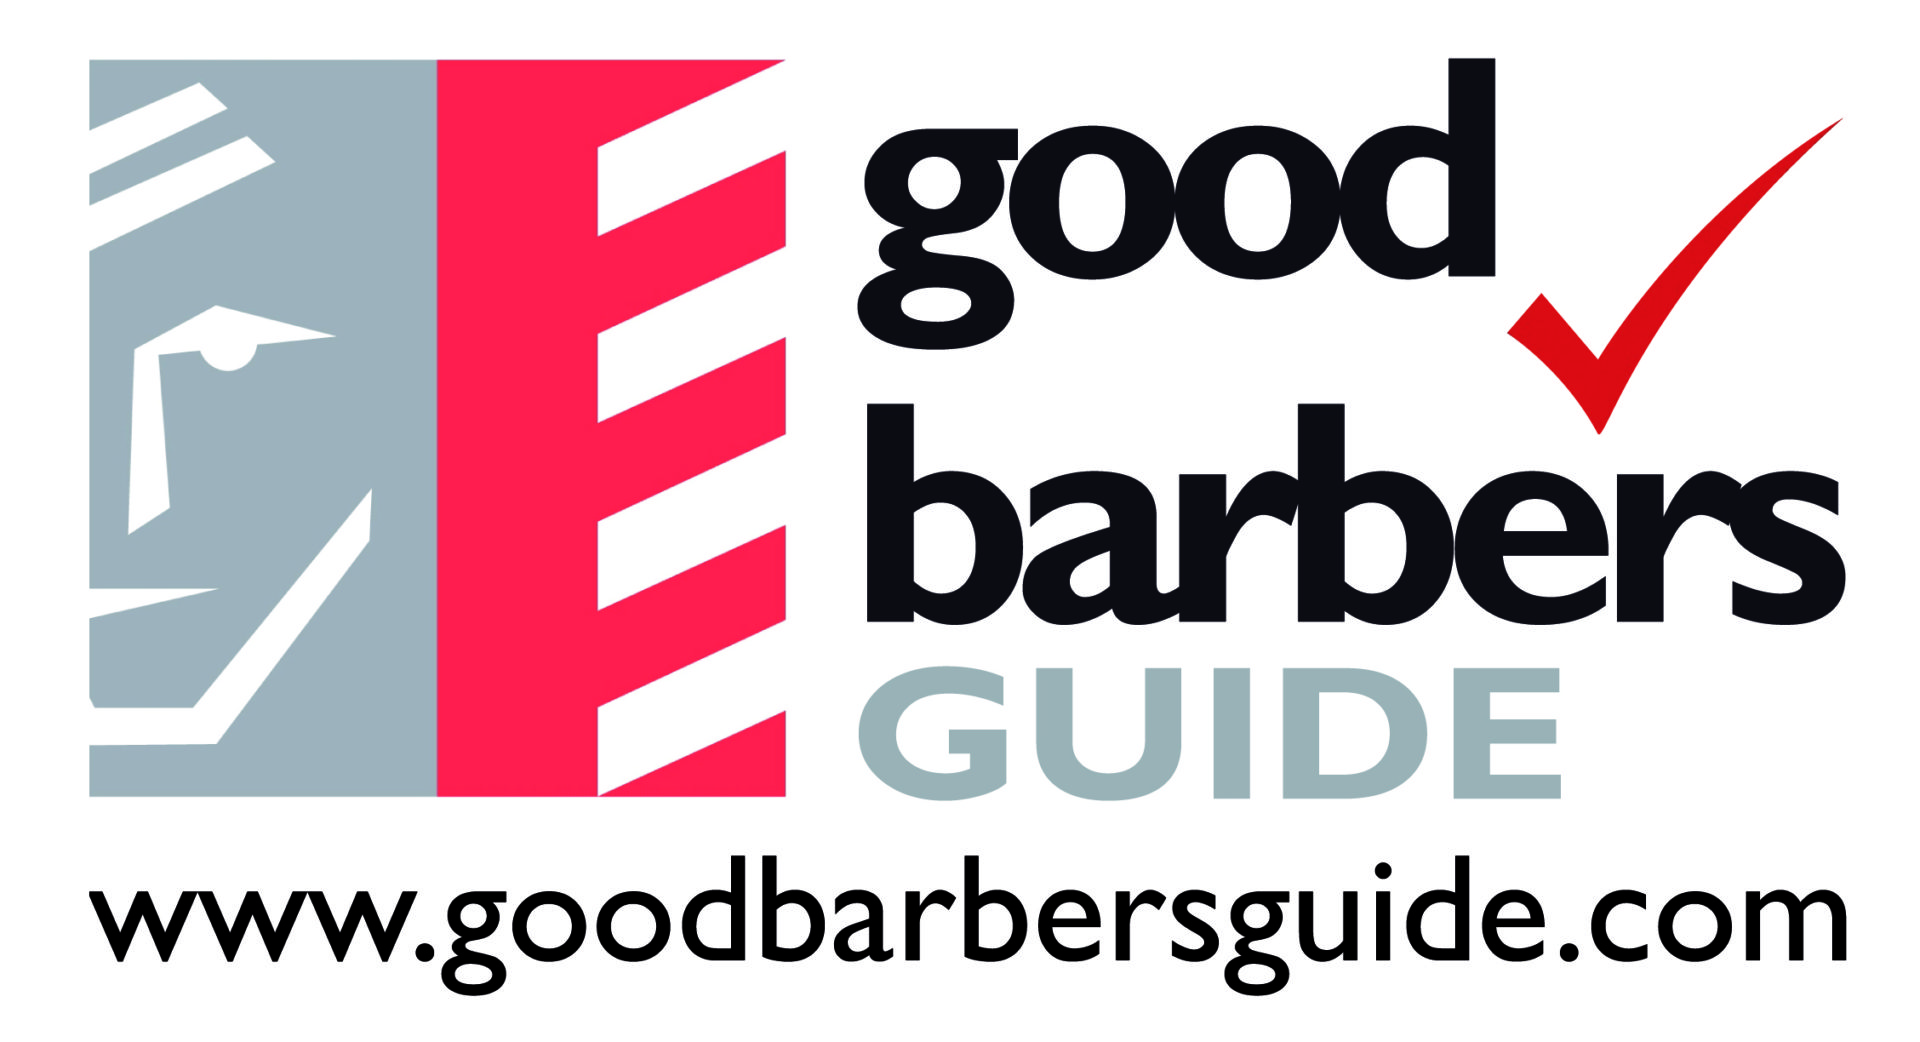 Good Barbers Guide logo large